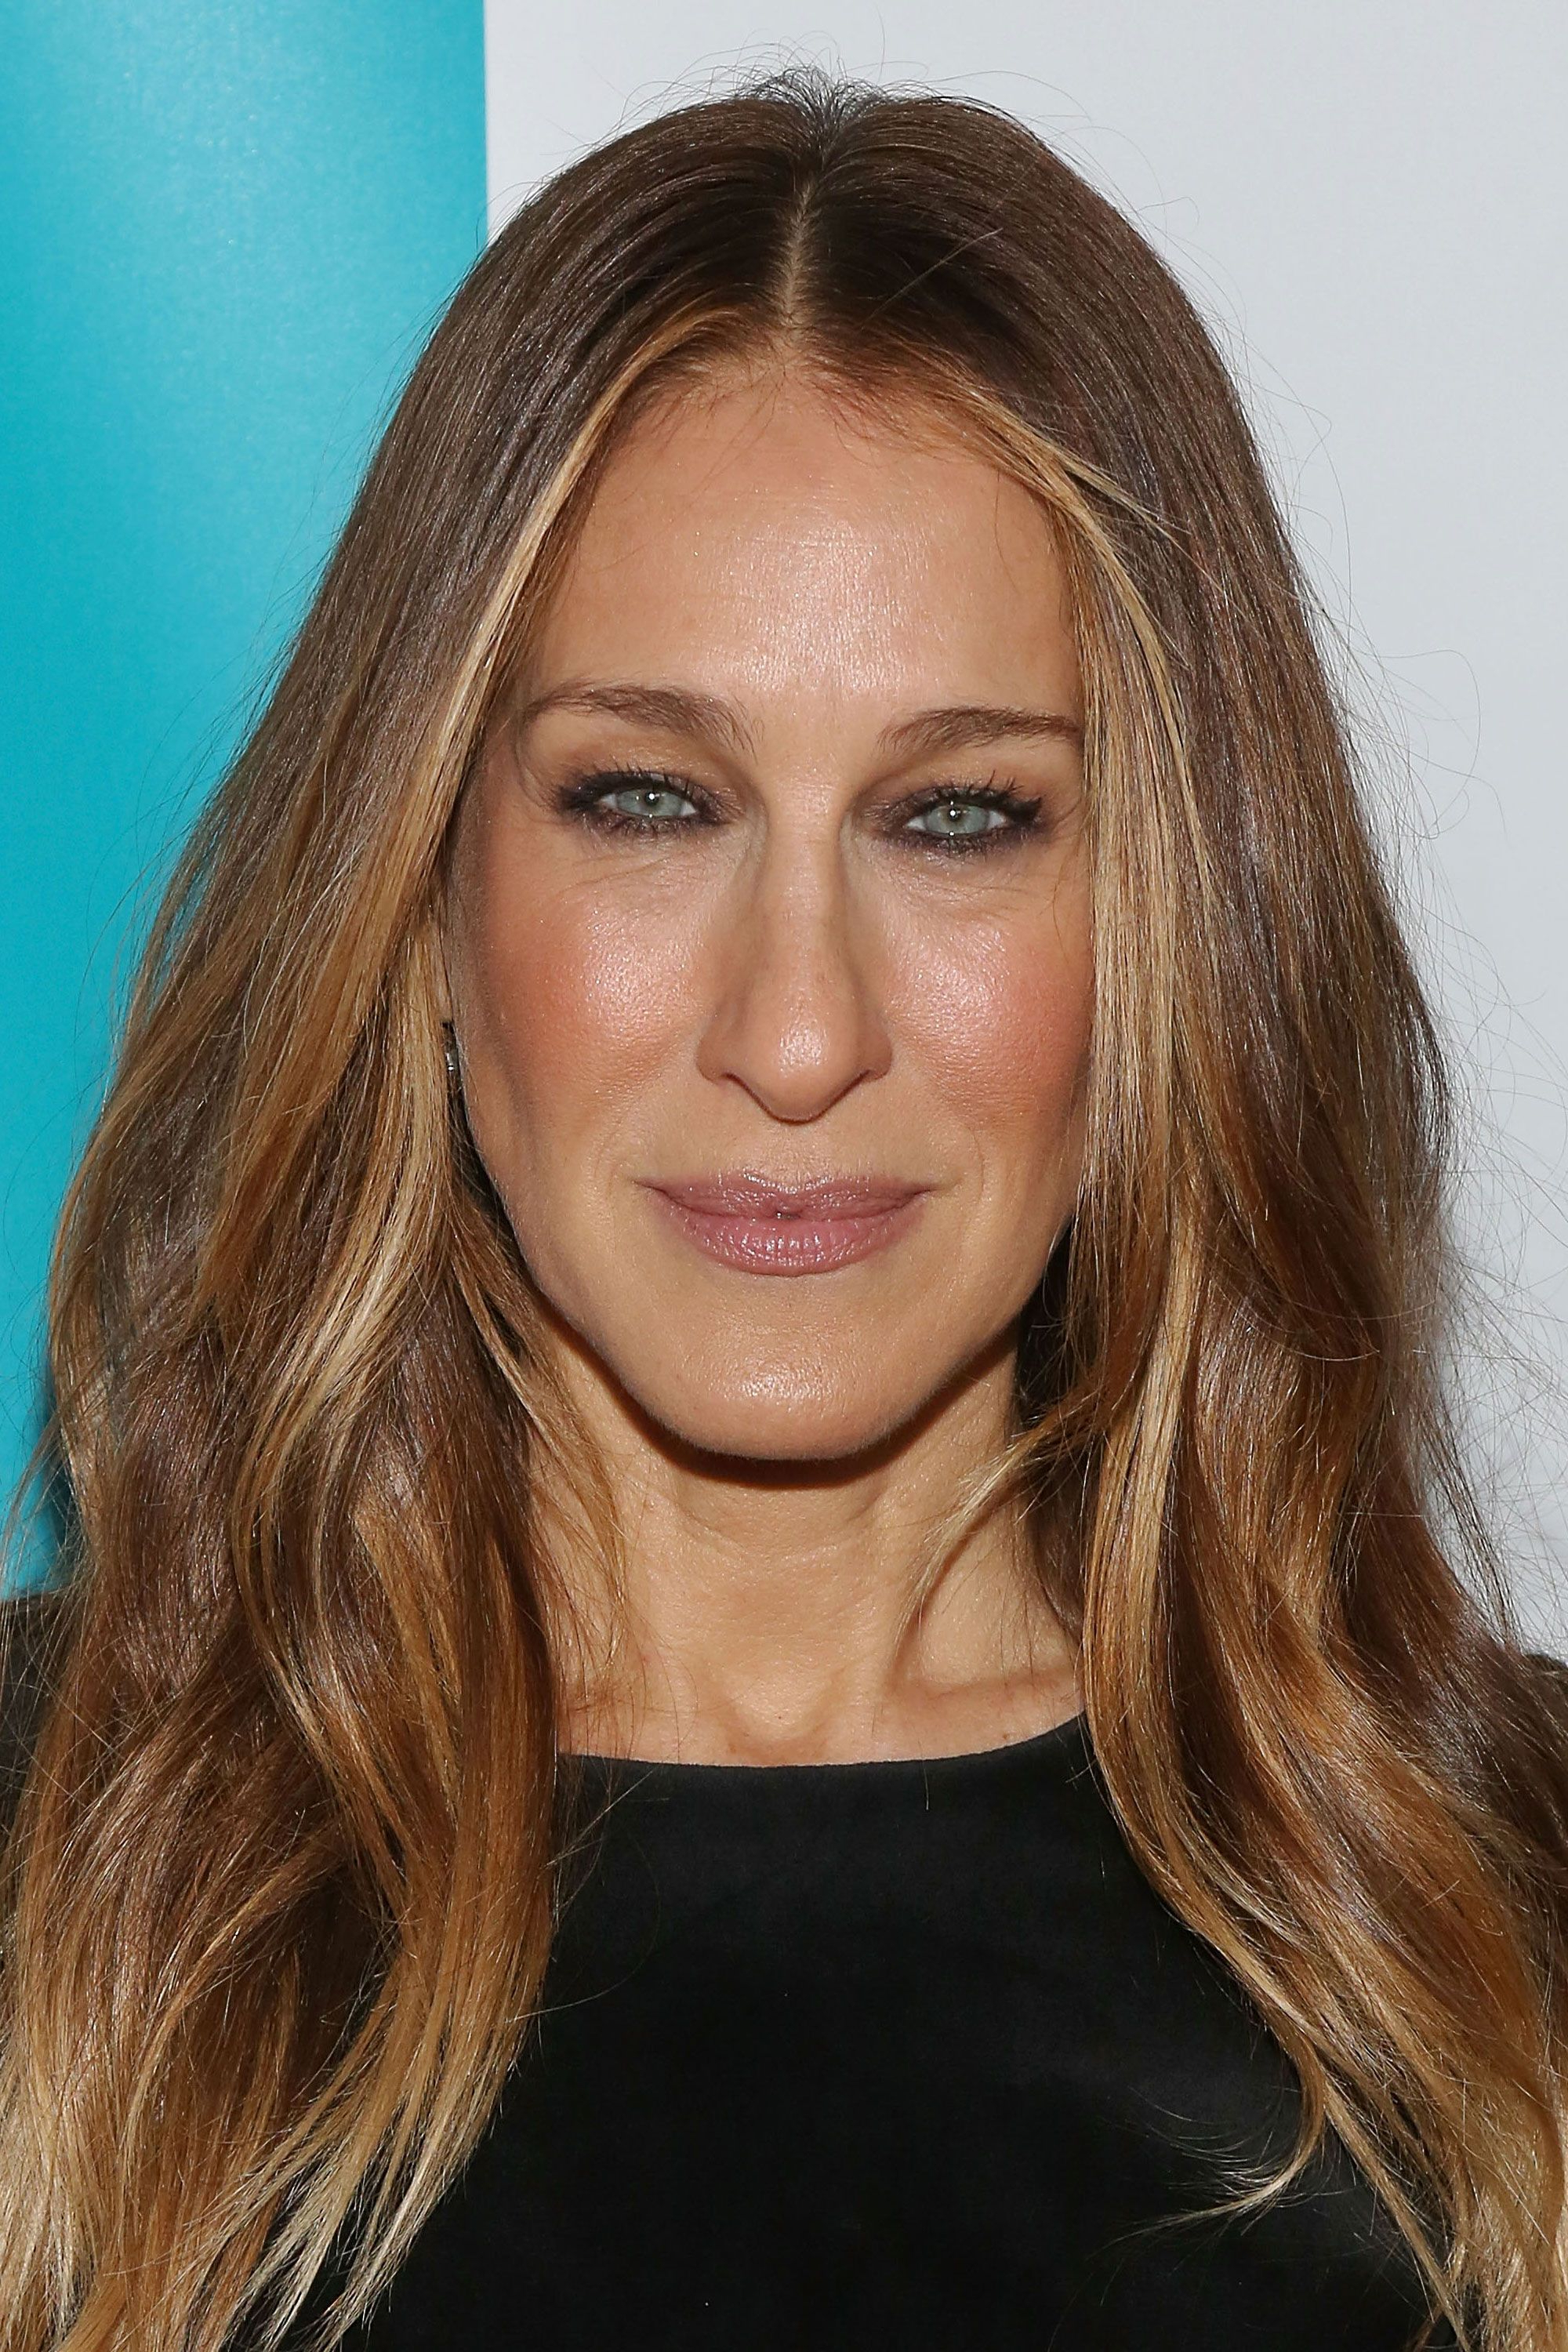 50 Hairstyles That Will Make You Look Younger – Haircut Ideas To Regarding Well Known Sarah Jessica Parker Medium Hairstyles (View 16 of 20)